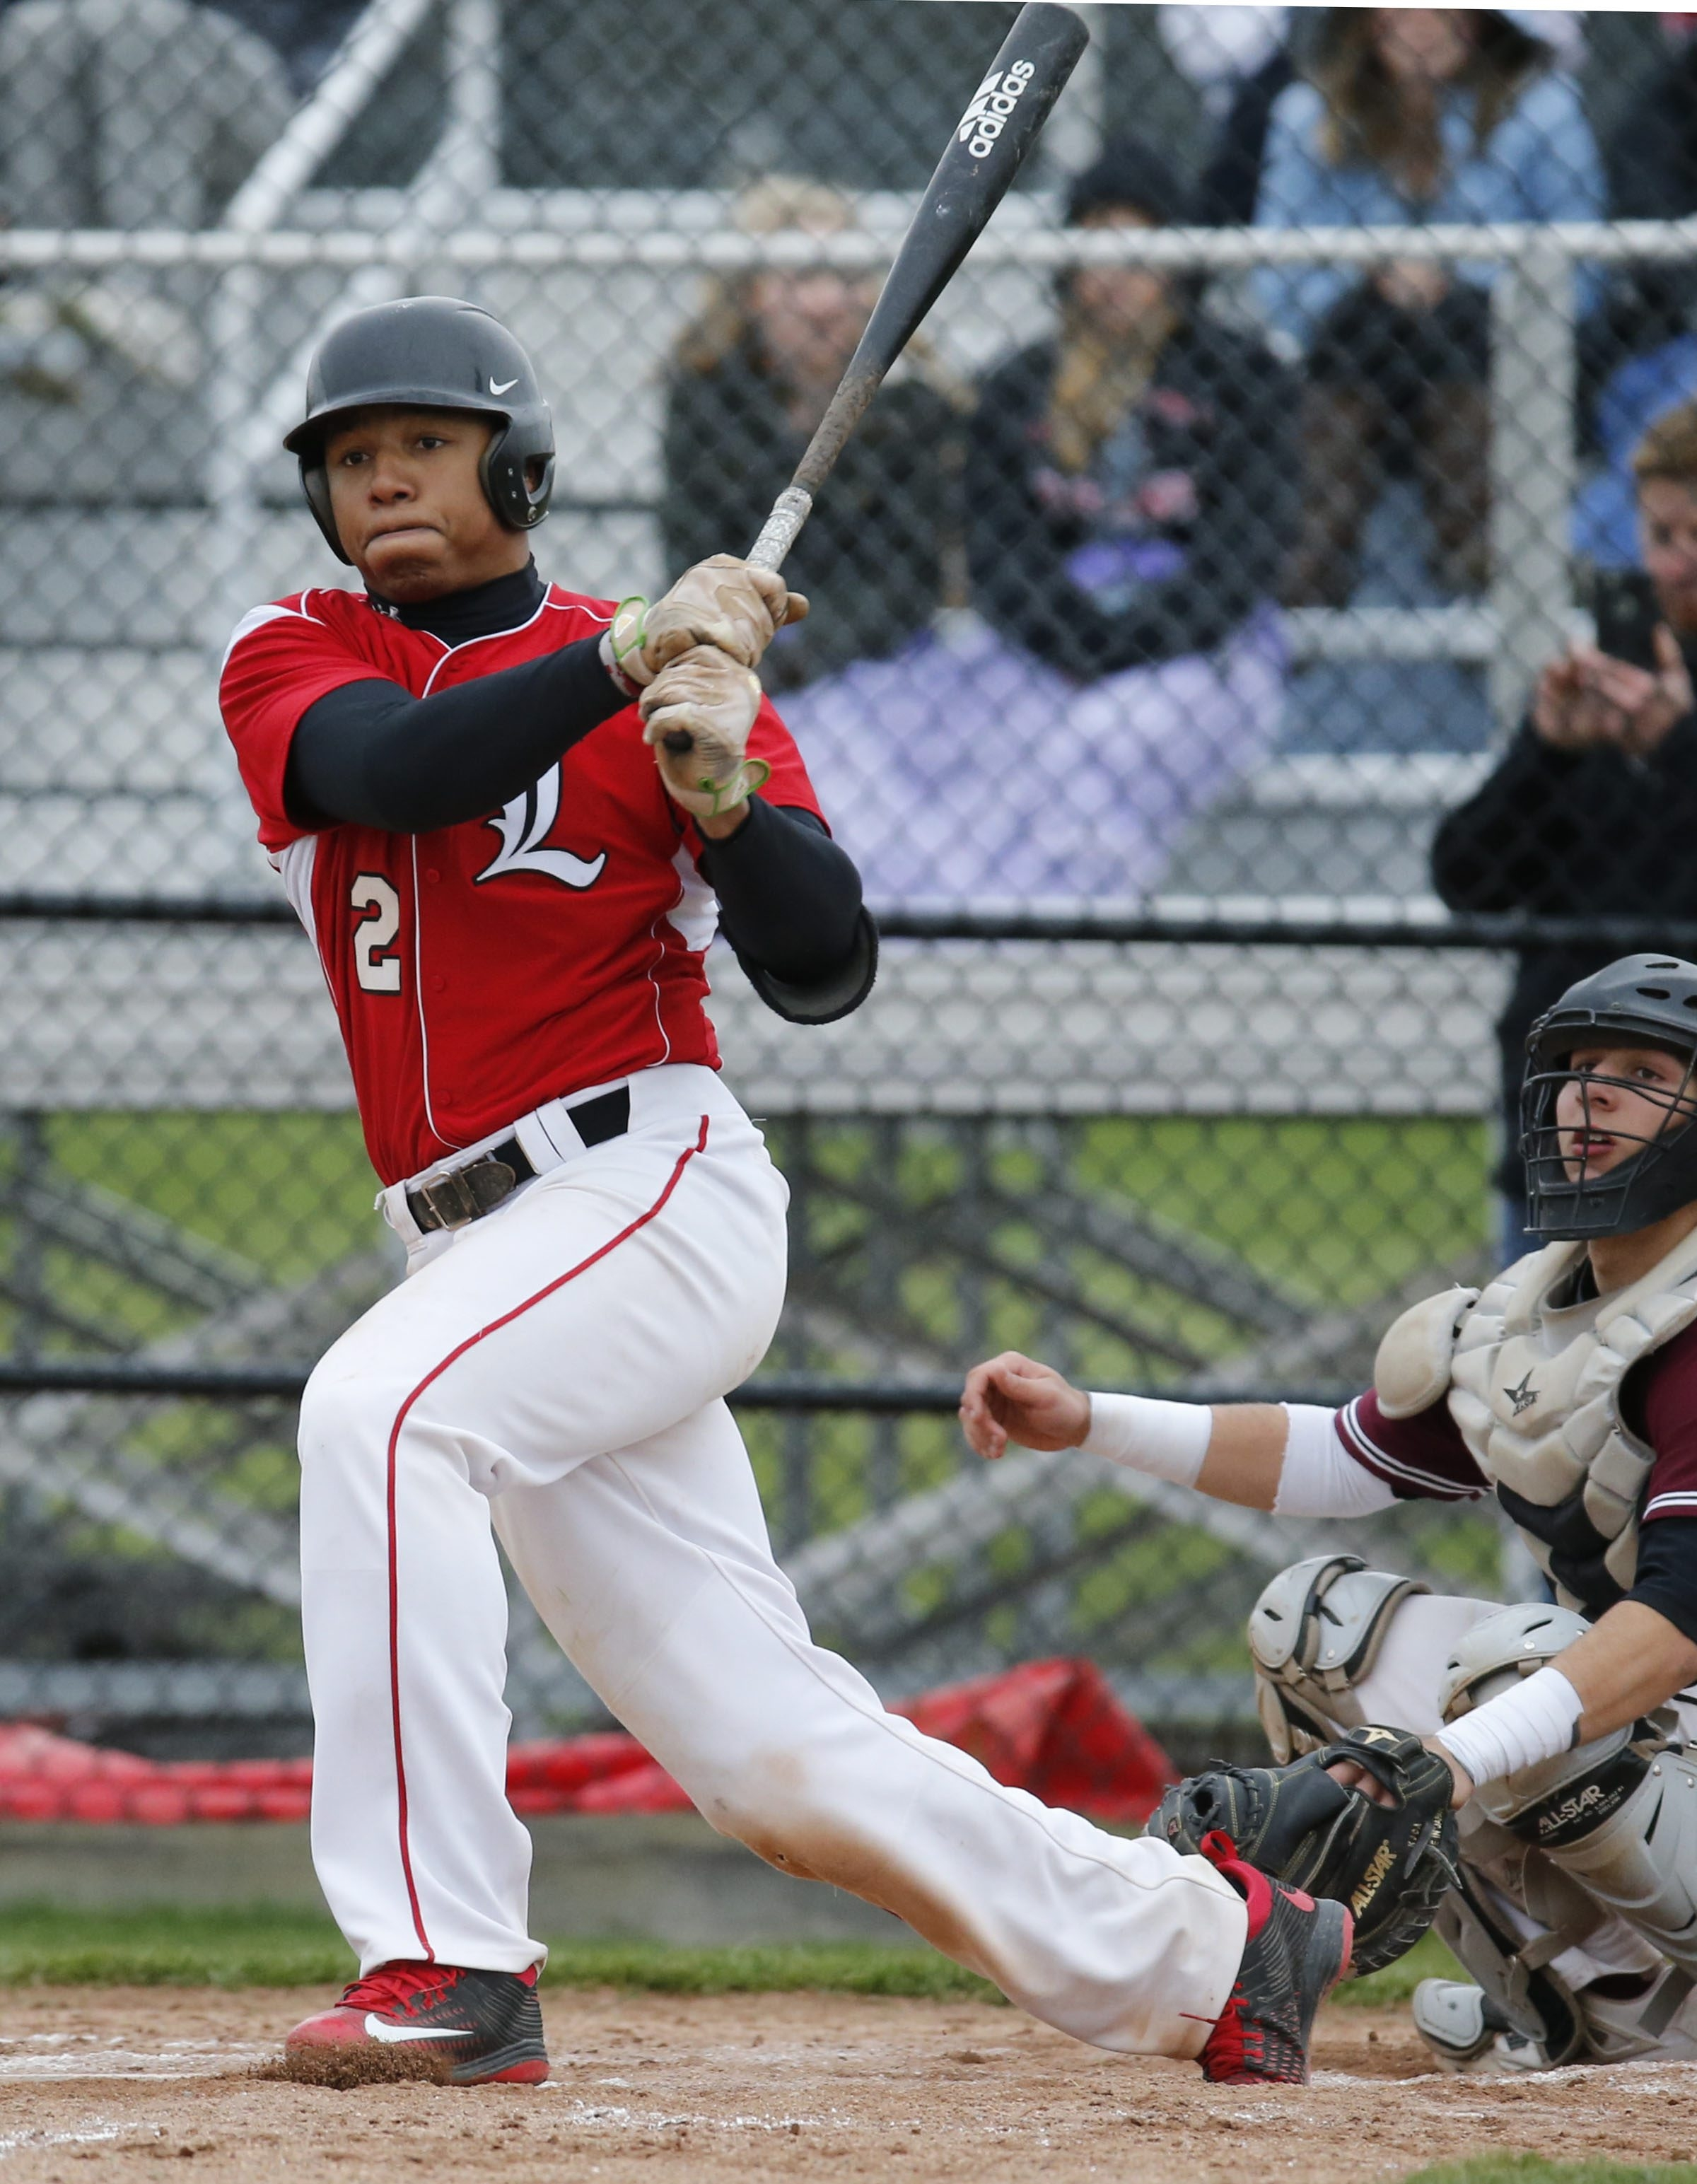 LG Castillo is a top contender for Player of the Year honors in Western New York baseball. (Photo by Harry Scull Jr. / Buffalo News)